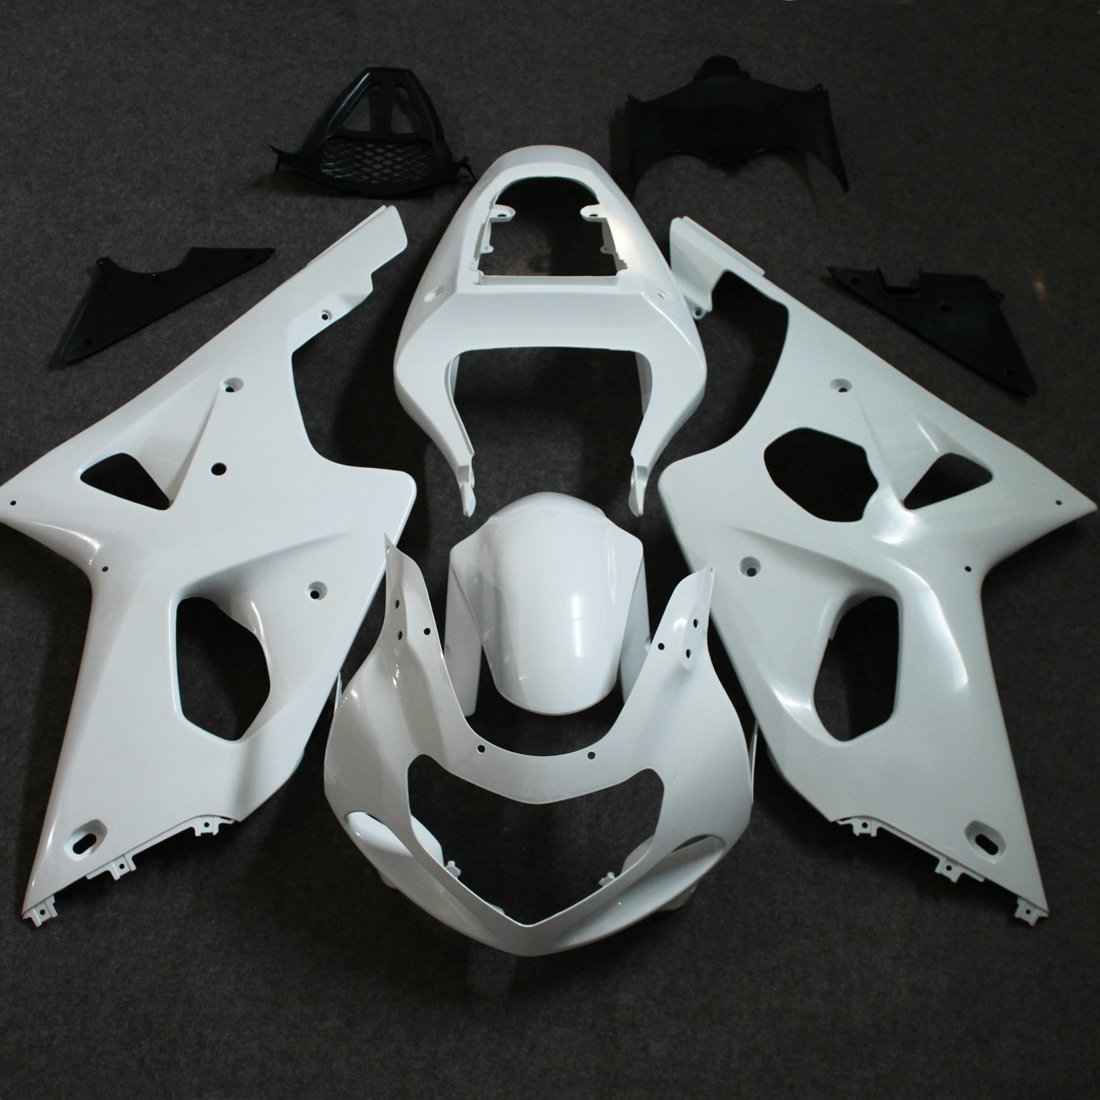 Unpainted Fairing Kit Bodywork For Suzuki GSXR 1000 GSXR1000 2000 - 2002 2001 GSX-R1000 00 01 02 Motorcycle Injection Molding